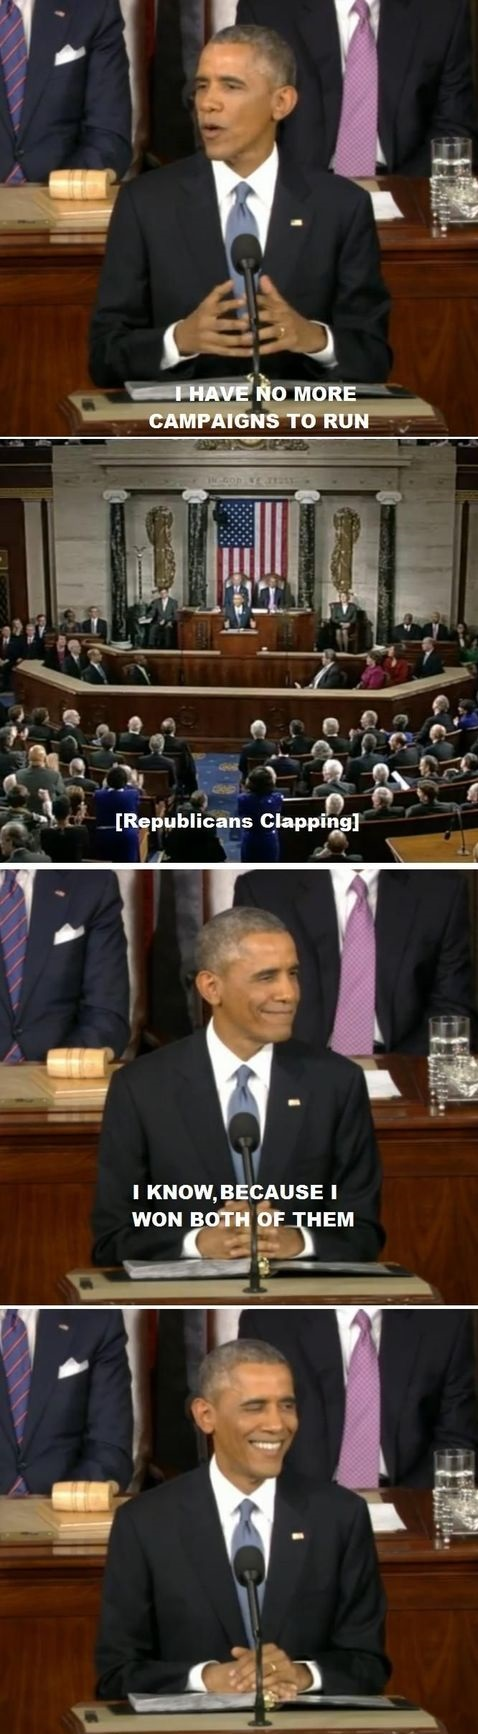 obama-trolling-congress-compaign